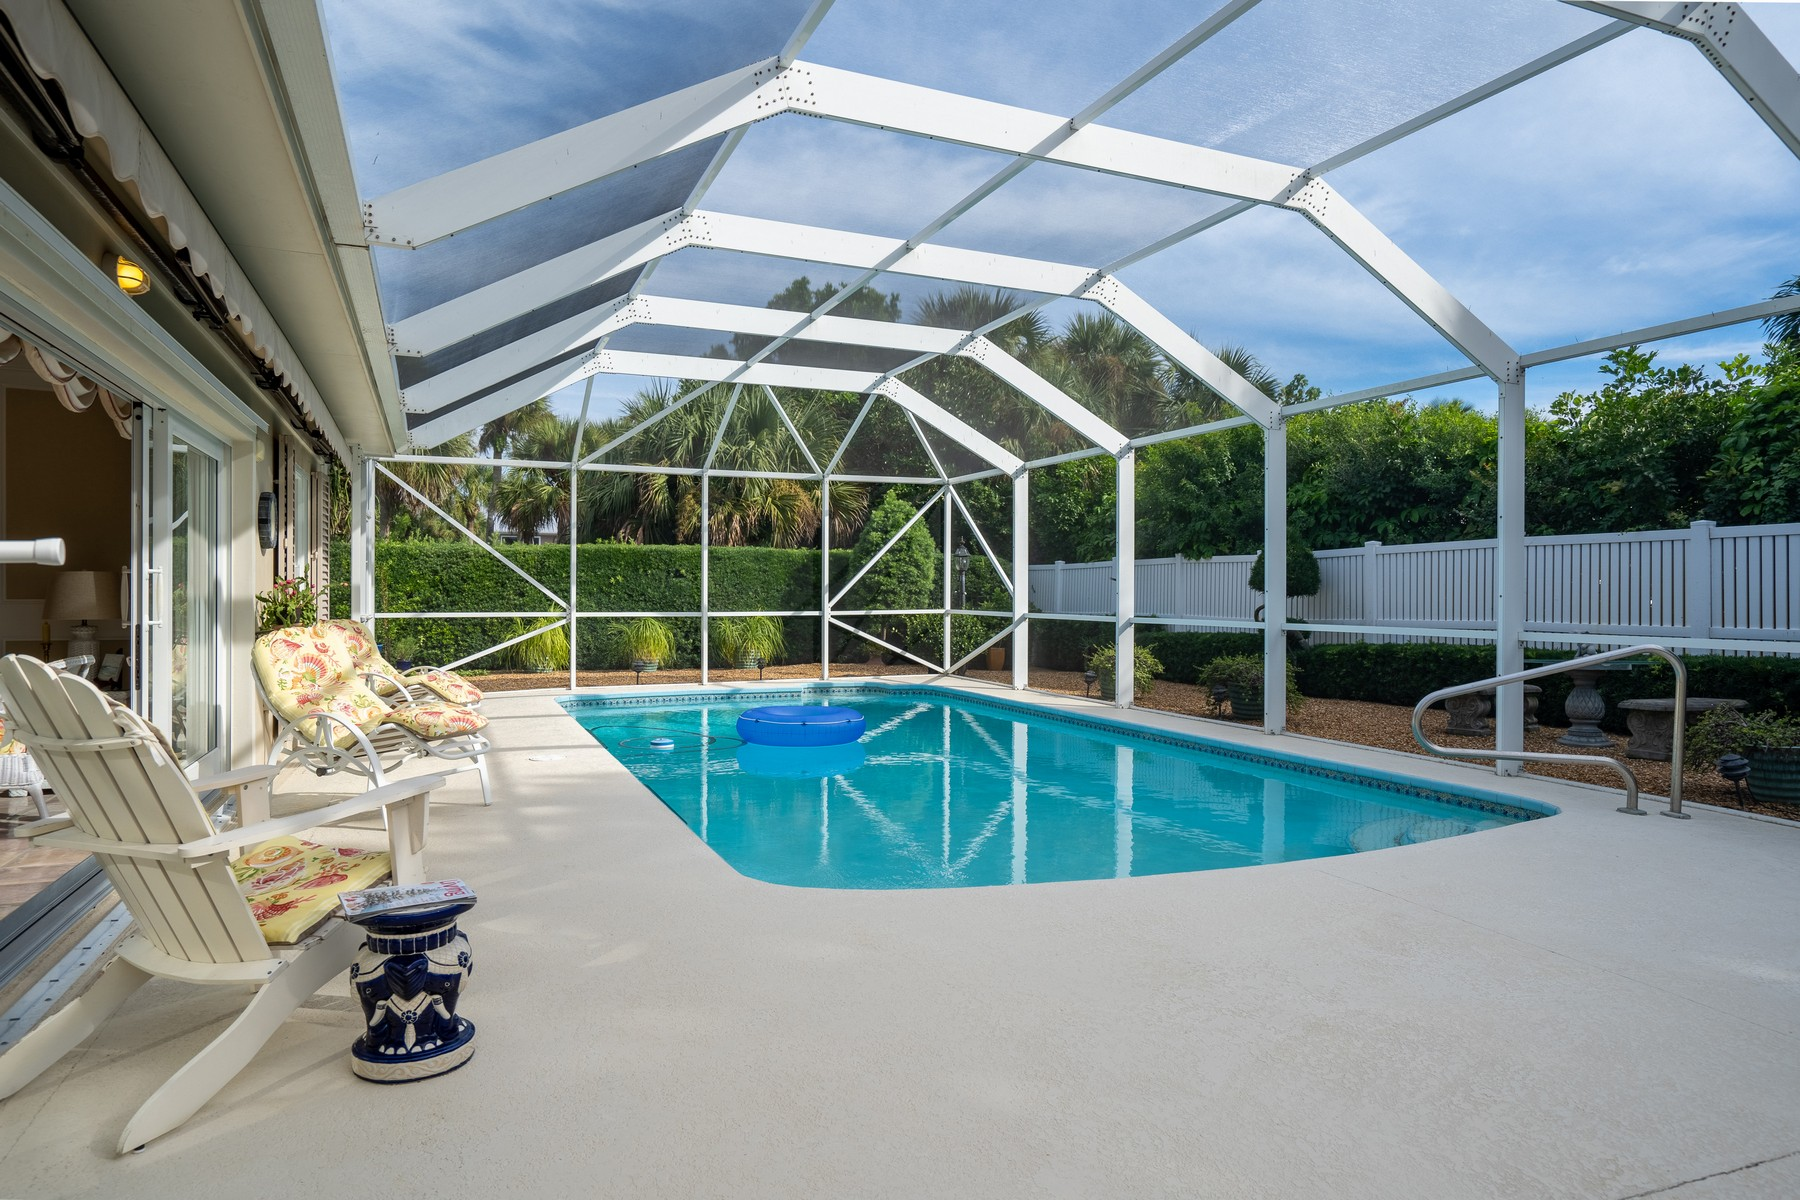 Additional photo for property listing at Gorgeous Pool Home East of A1A 935 Pebble Lane Vero Beach, Florida 32963 United States